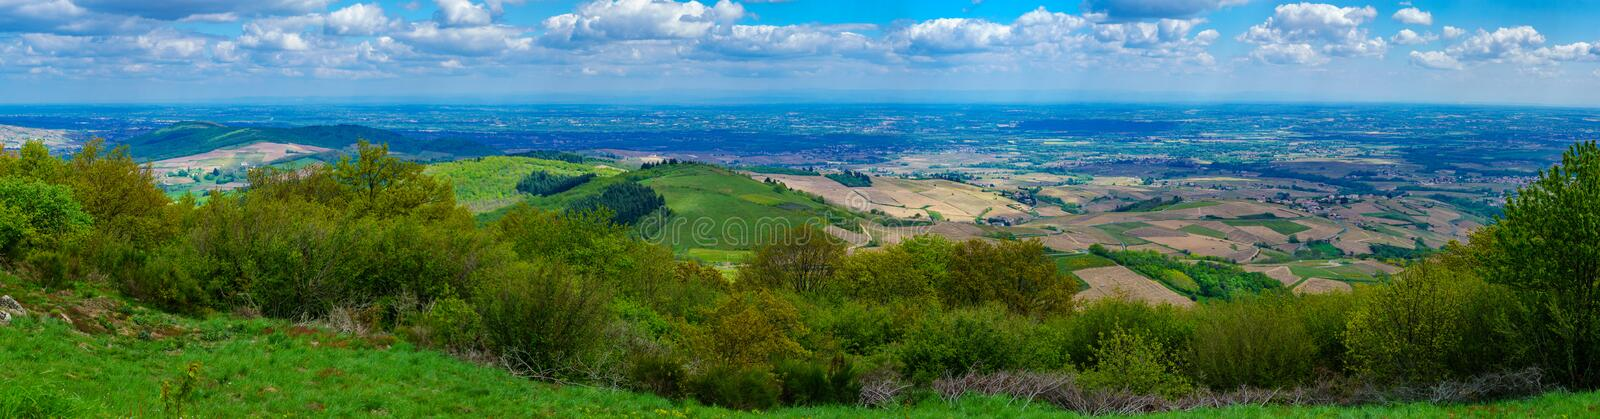 Panoramic landscape of vineyards and countryside in Beaujolais. Rhone department, France stock images